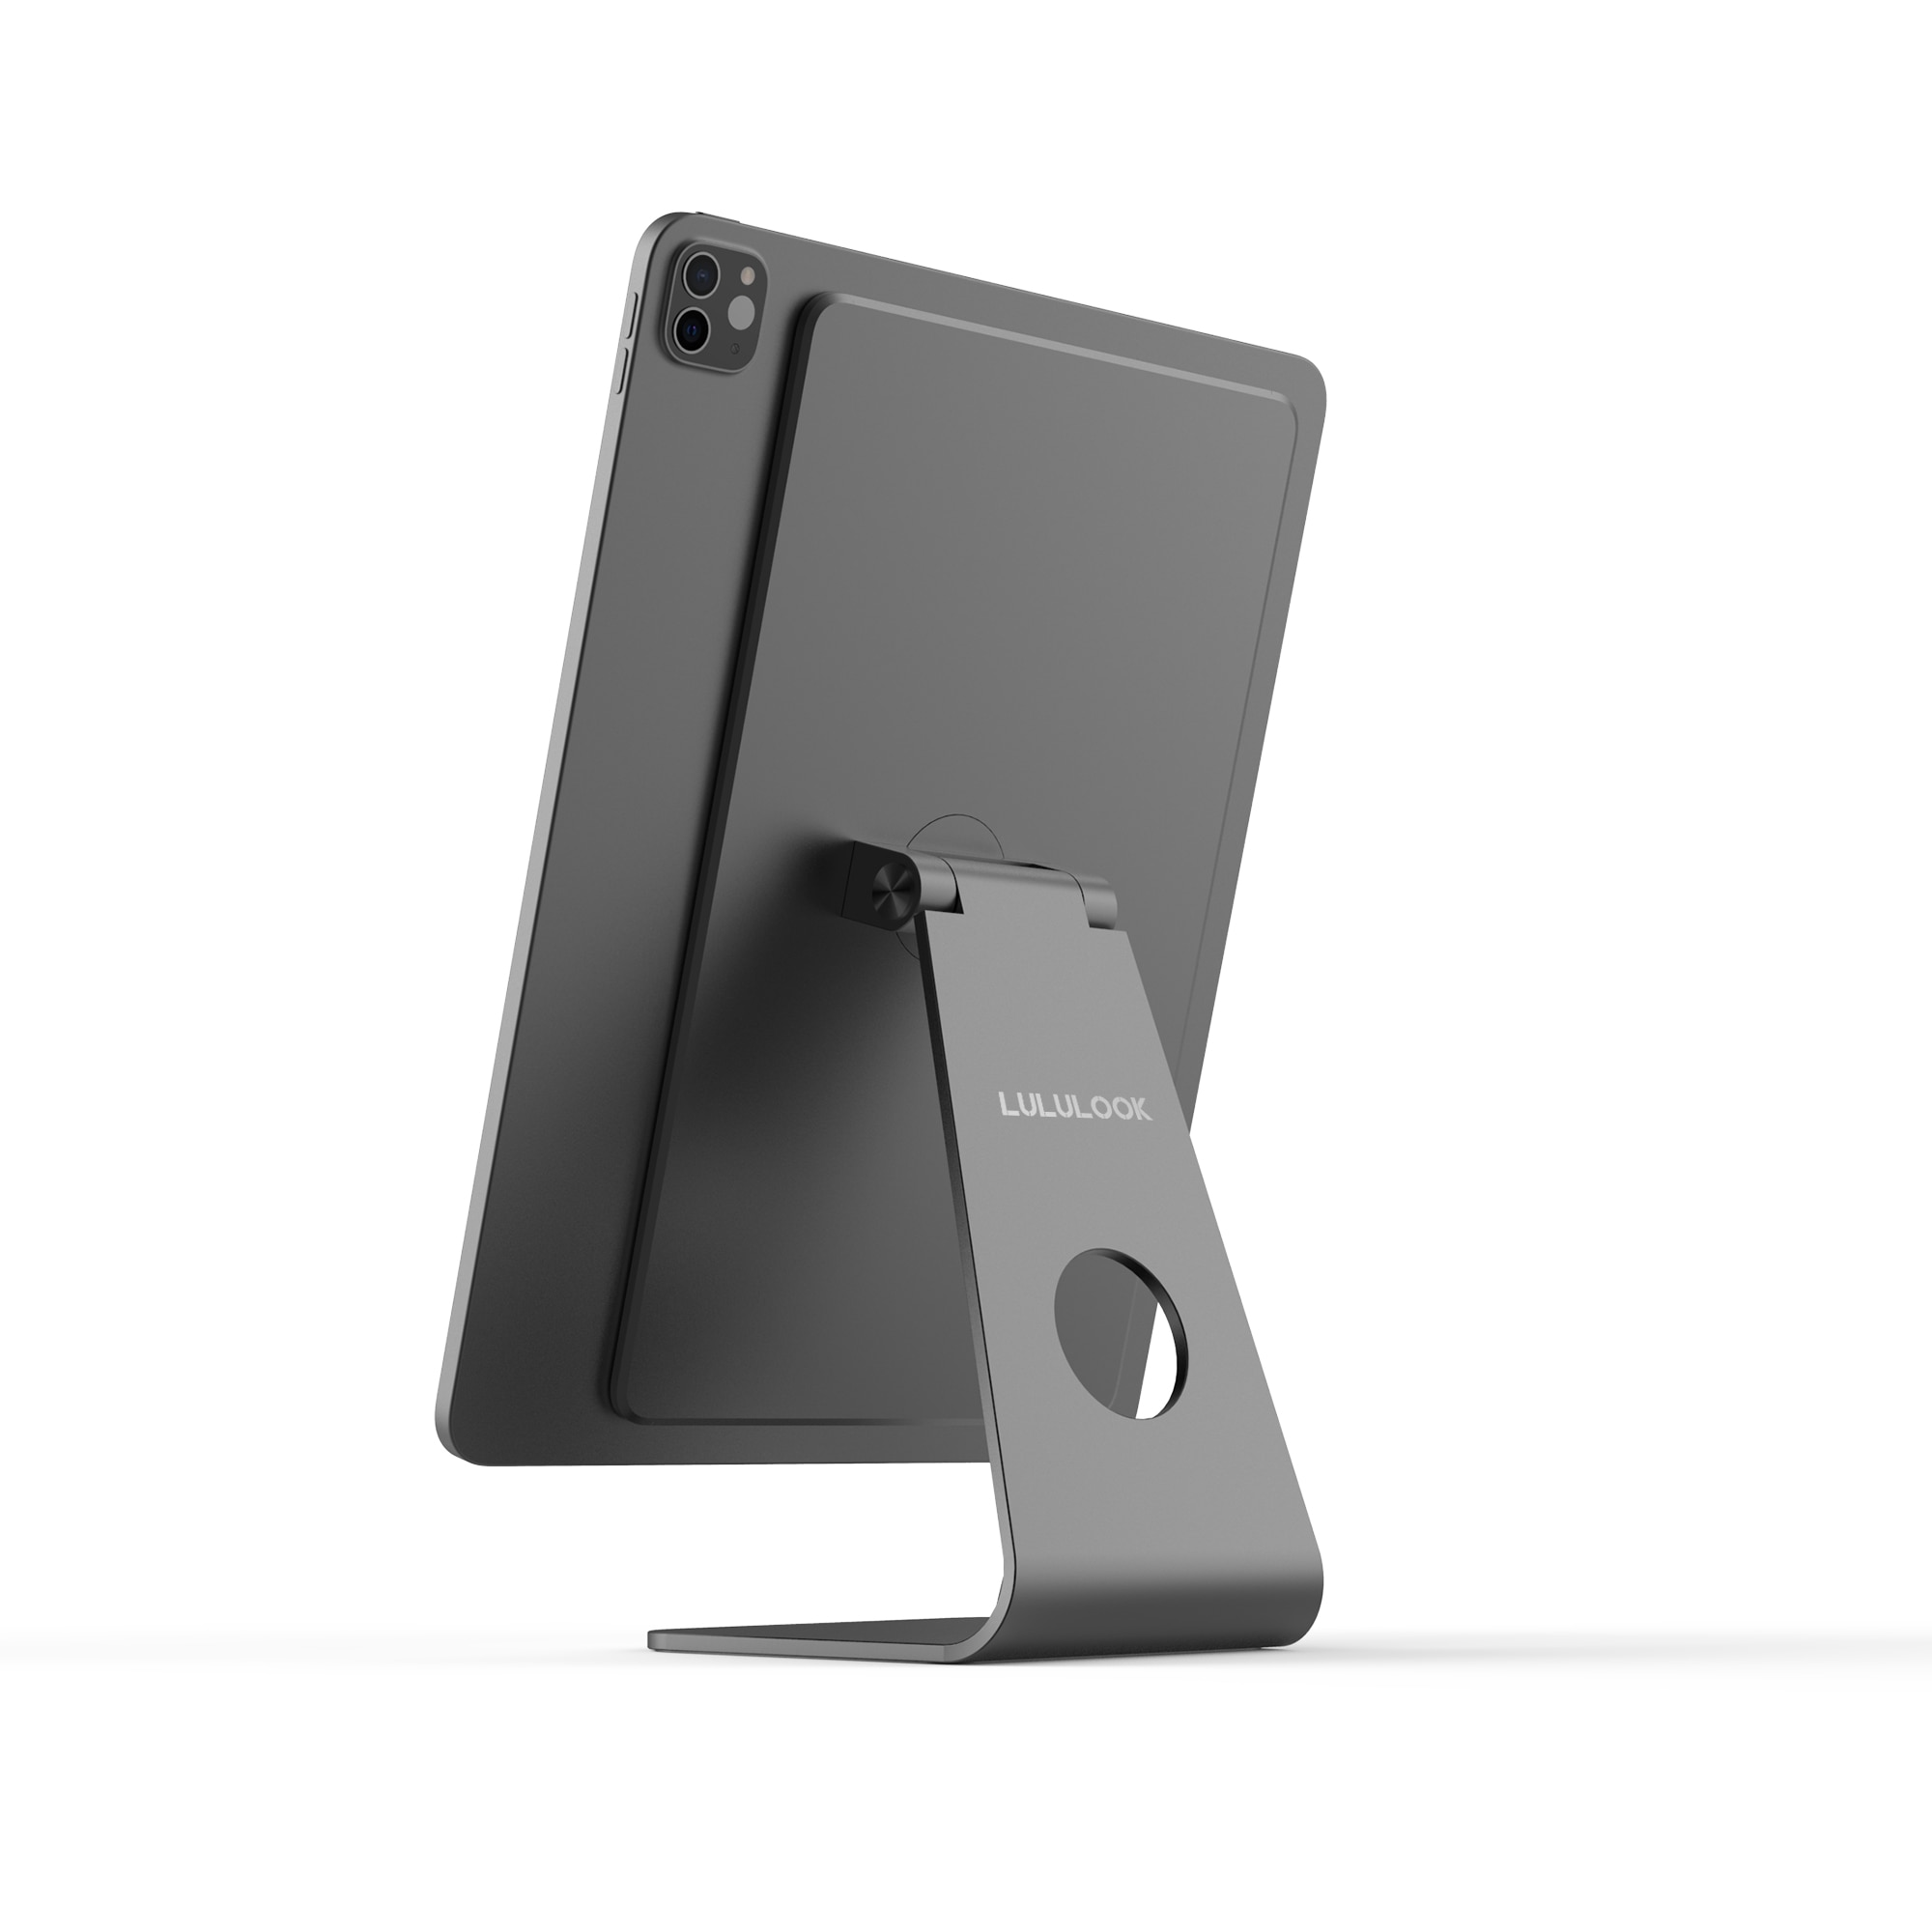 Lululook Magnetic Laptop Stand Aluminum Bracket For iPad Stand 360° Rotation Tablet Holder For iPad